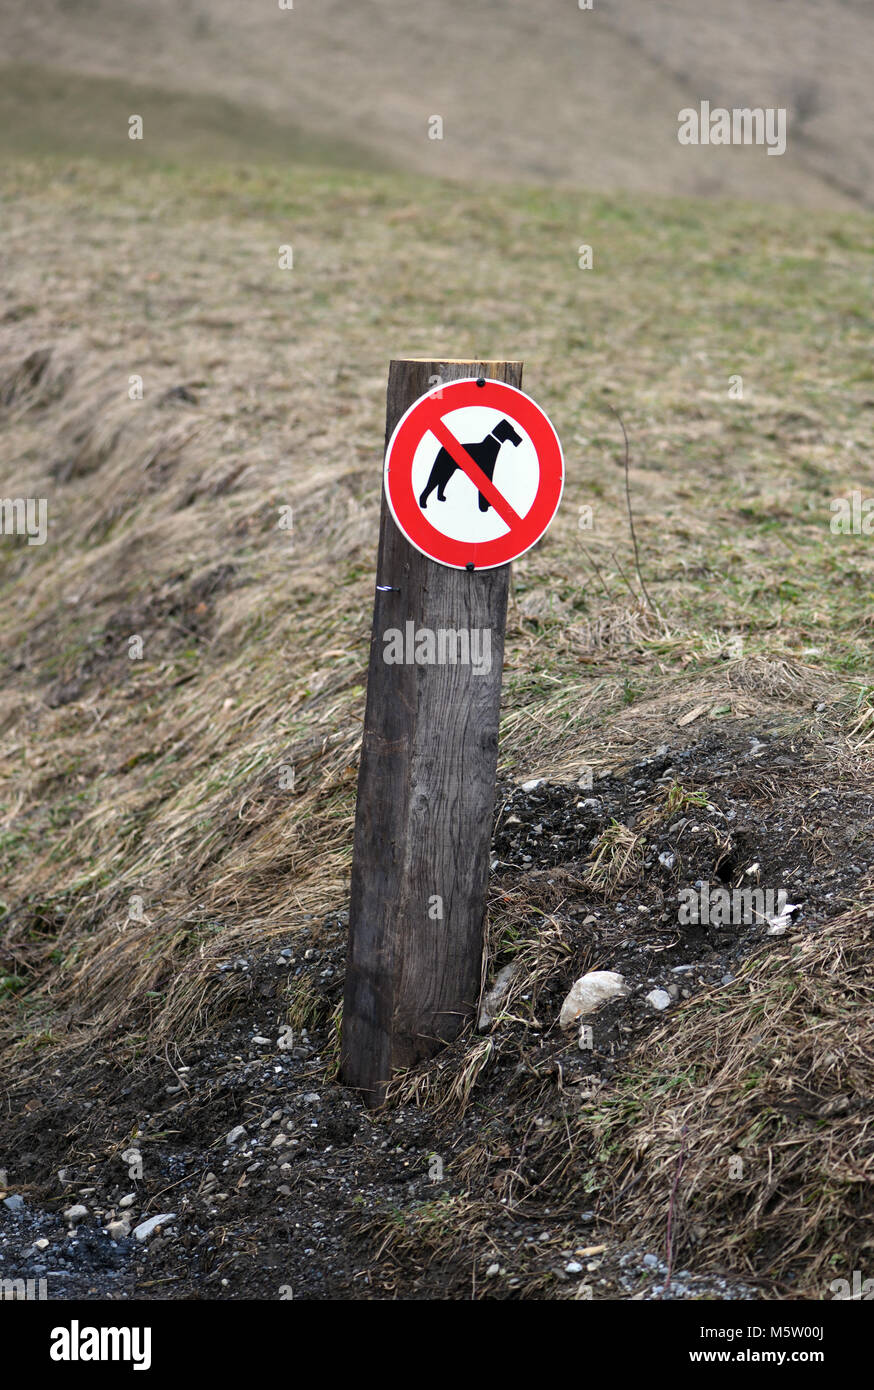 A sign with a pictogram showing no dogs beside a track. Samoens, Haute Savoie, France. - Stock Image